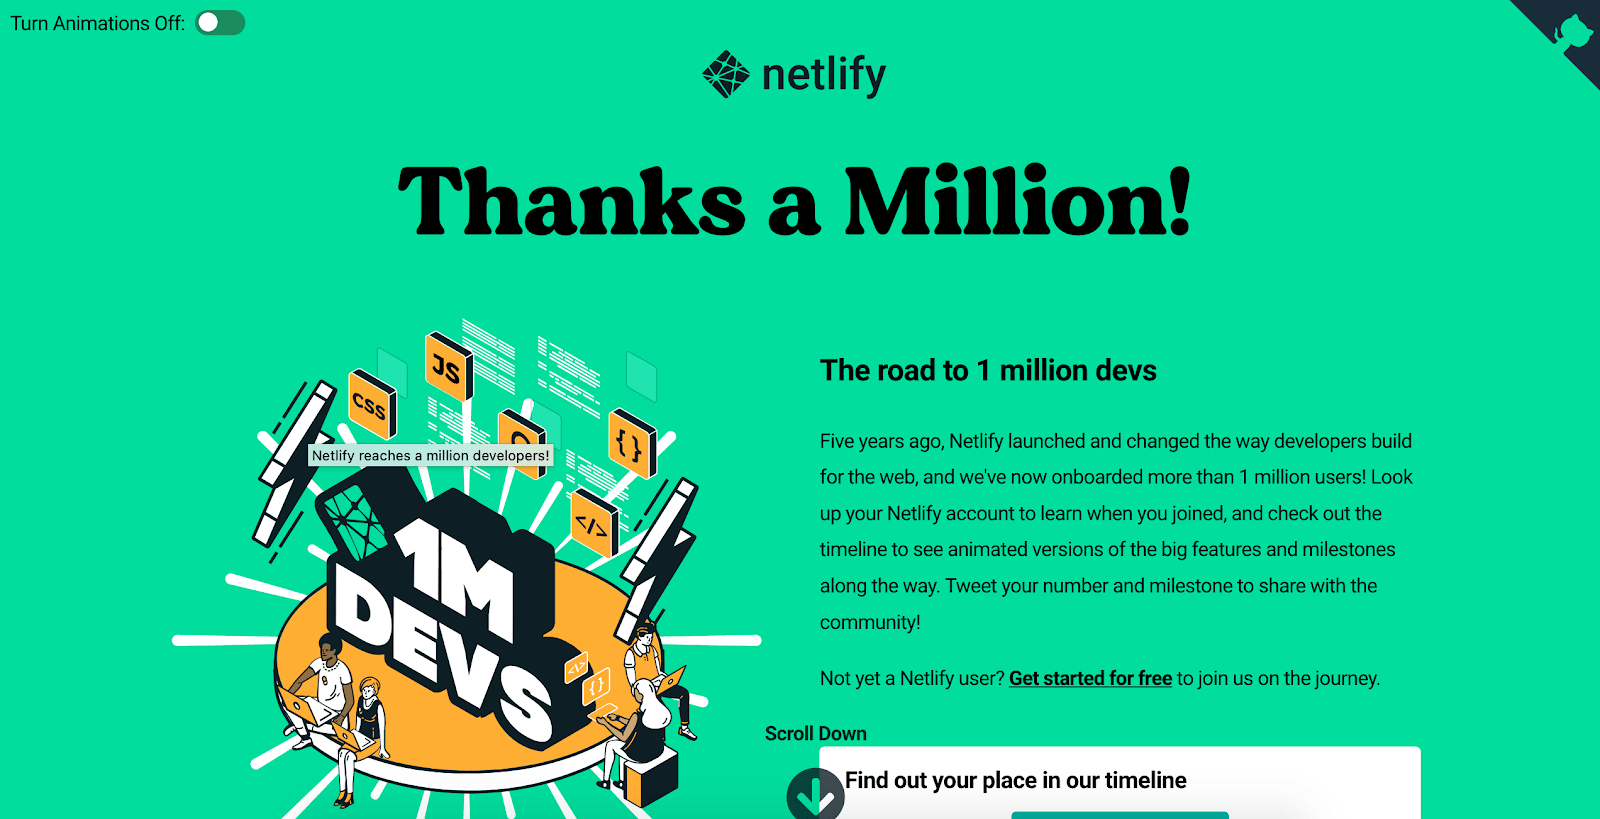 Showing a screenshot of Netlify's Thanks a Million webpage. A toggle to disable animation is located in the top left corner of the page, above the content, which is set against a mint green background.